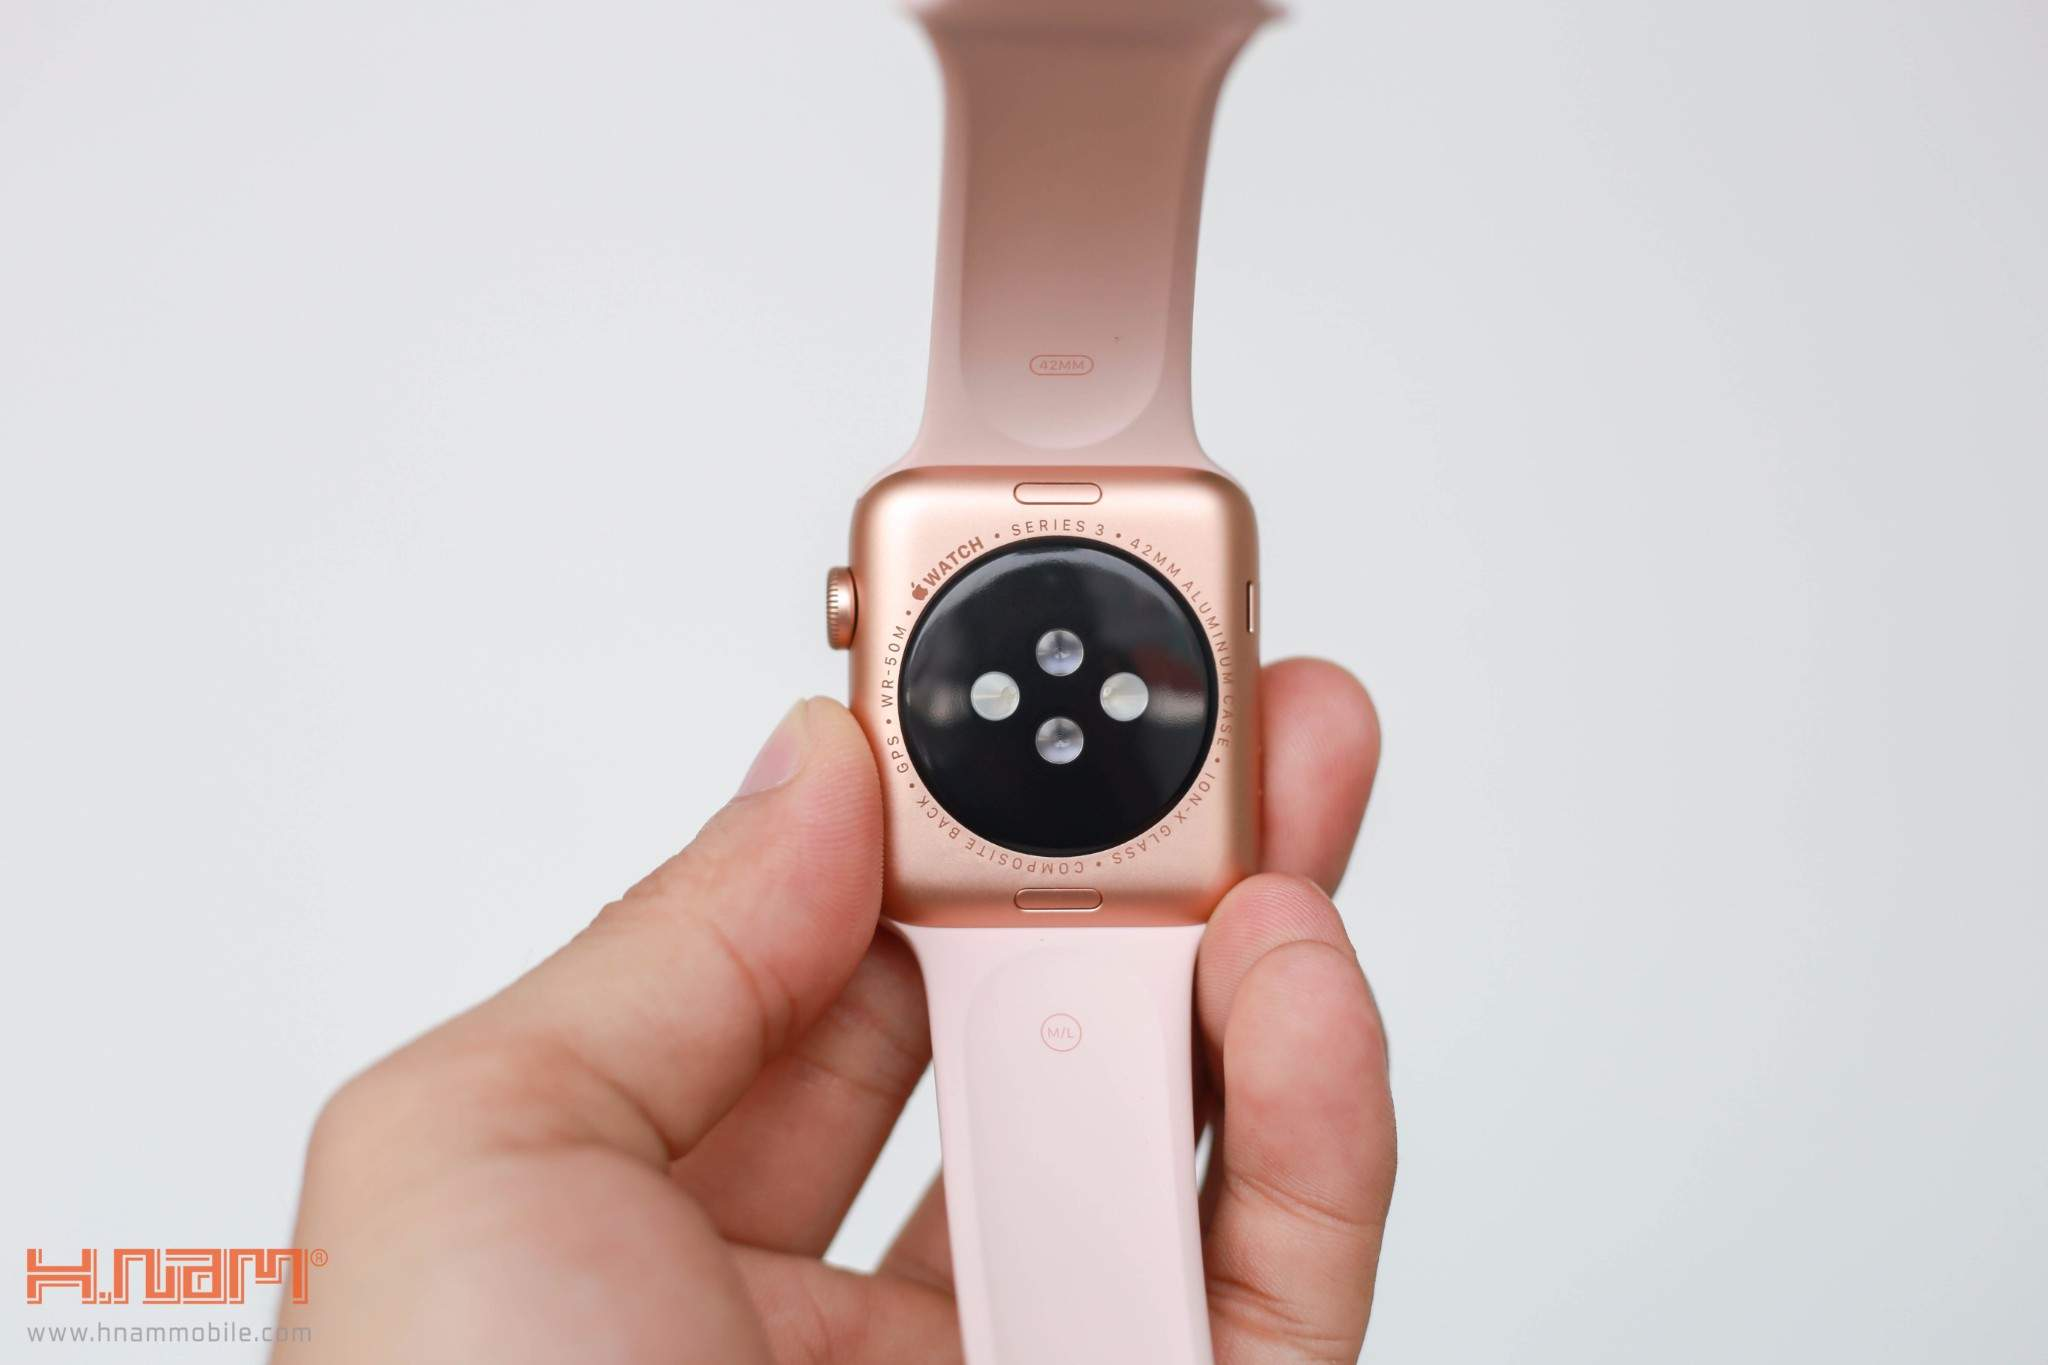 Apple Watch Series 3 42mm Gray Aluminum Case with Anthracite/Black Nike Sport Band MQL42 hình sản phẩm 1